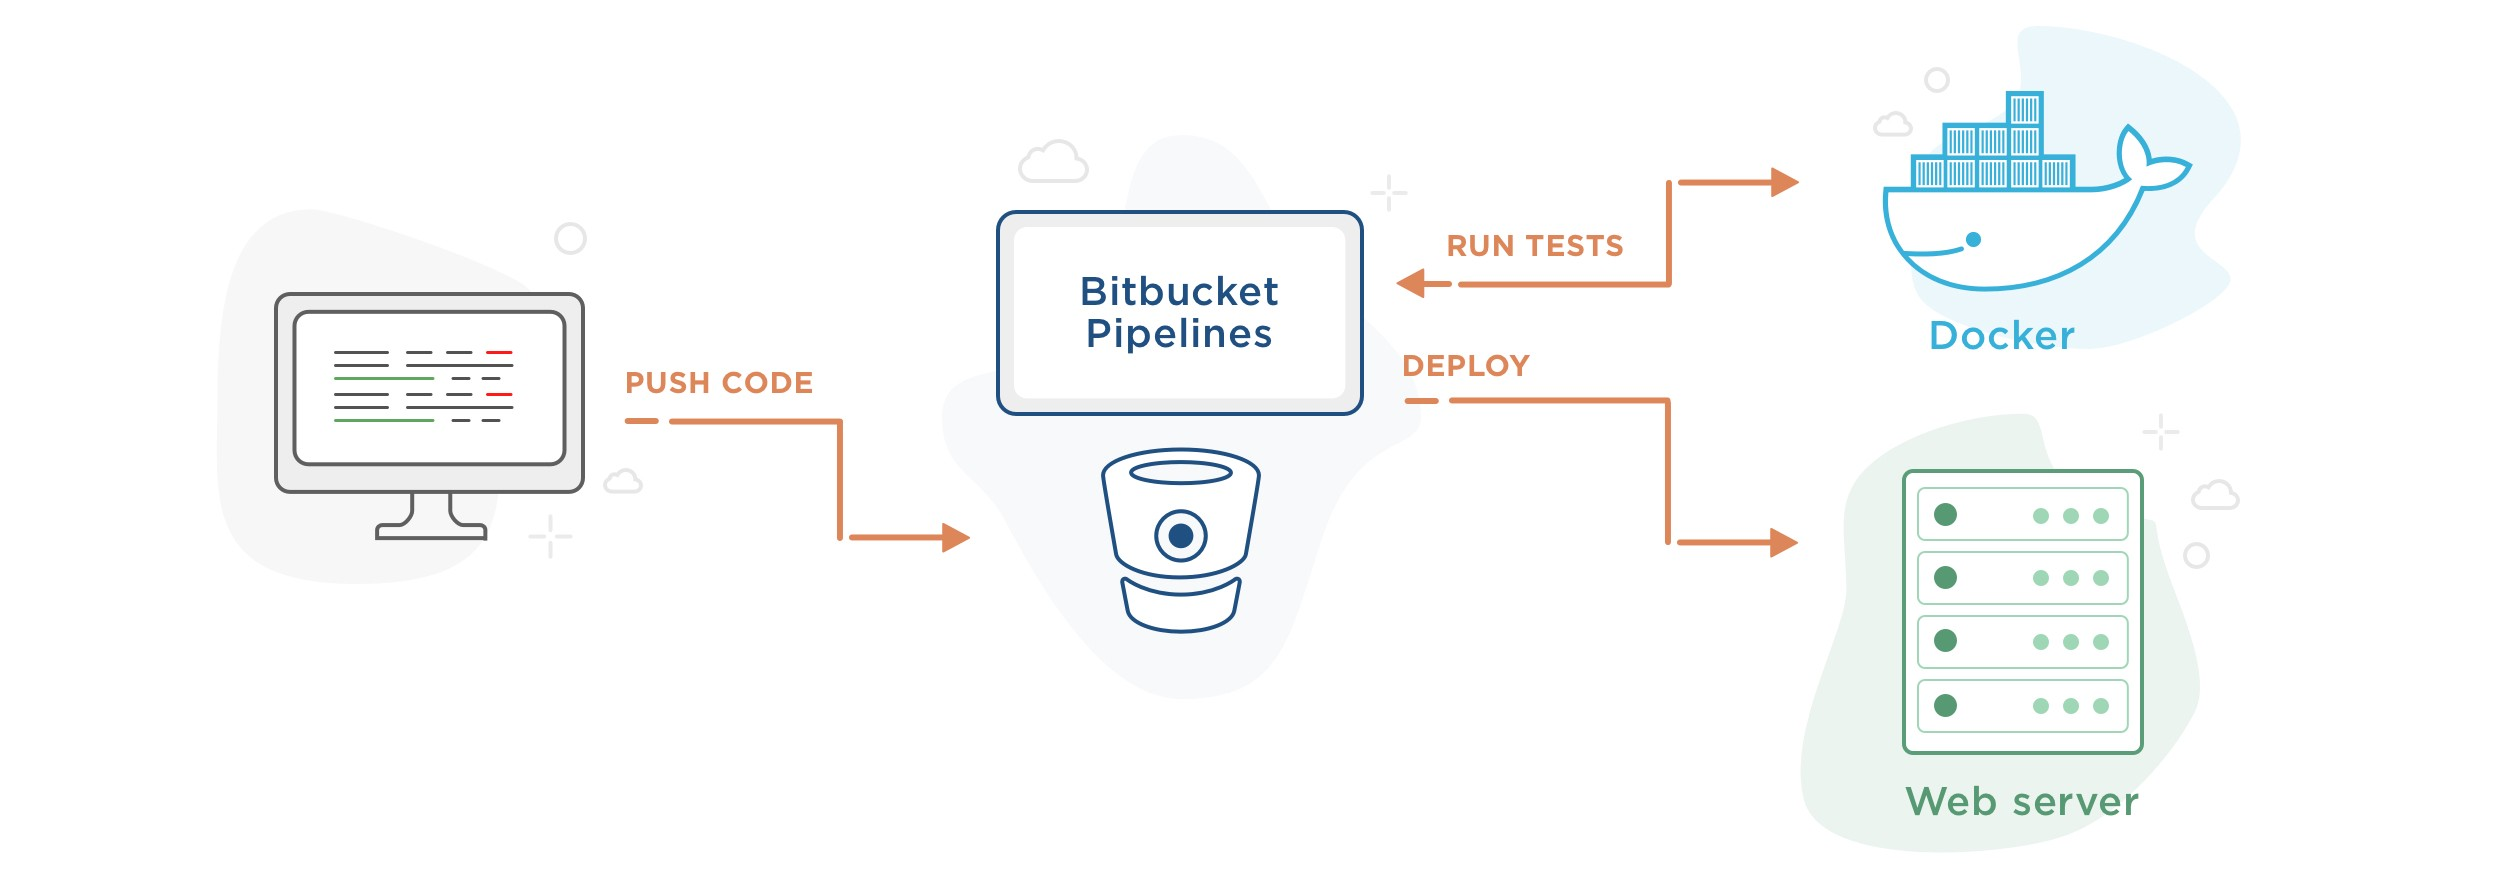 Building, Testing and Deploying Django App with Bitbucket Pipelines